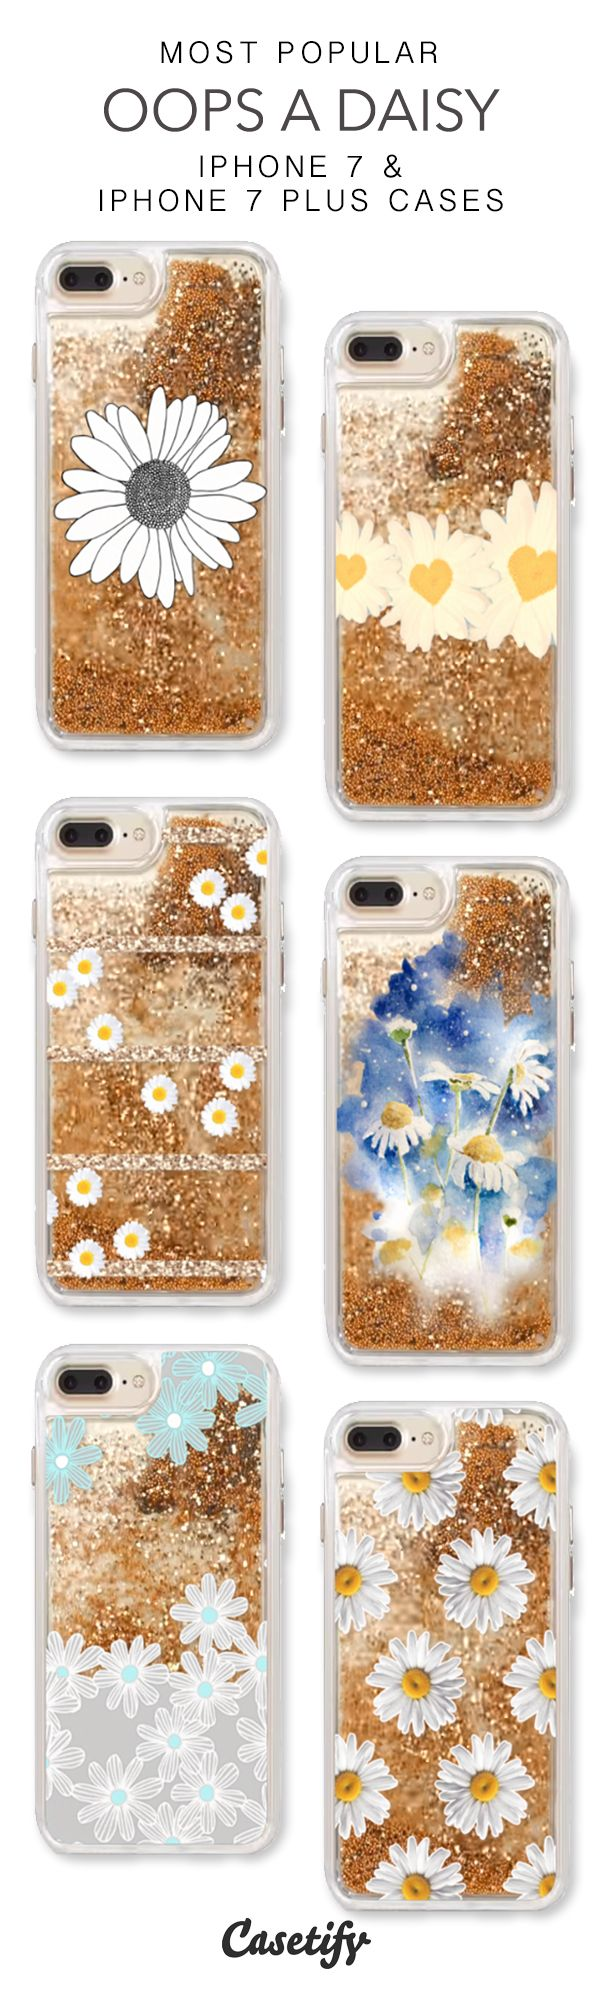 Most Popular Oops A Daisy iPhone 7 Cases & iPhone 7 Plus Cases. More glitter iPhone case here > https://www.casetify.com/en_US/collections/iphone-7-glitter-cases#/?vc=LOg6X3Qzyi